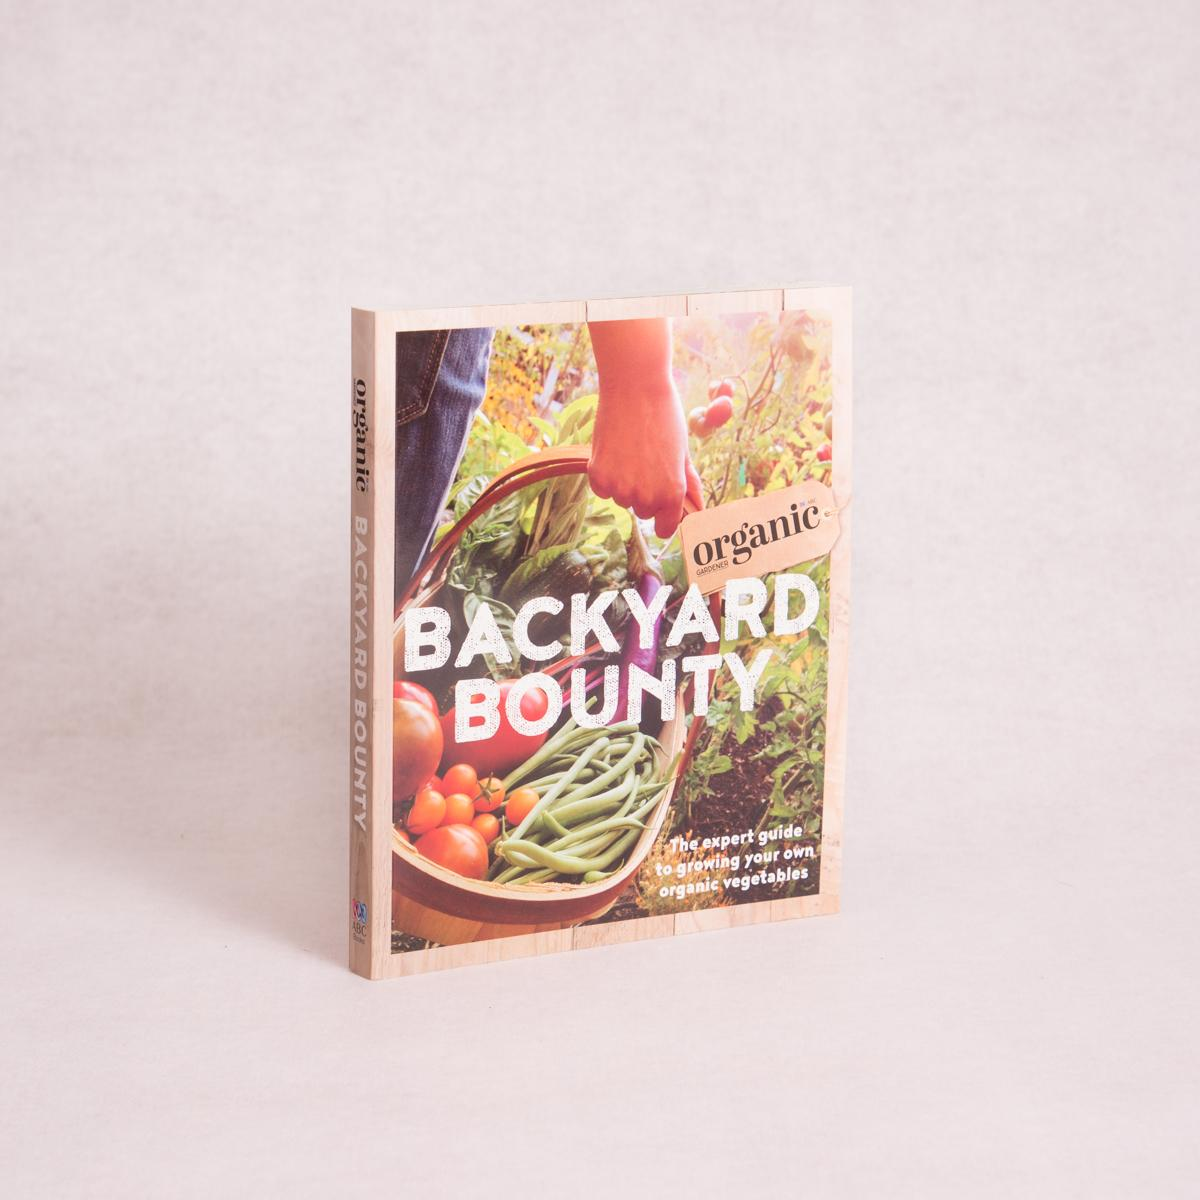 Backyard Bounty | By Organic Gardener Magazine - Book - Throw Some Seeds - Nature Inspired Gifts for the Home & Garden